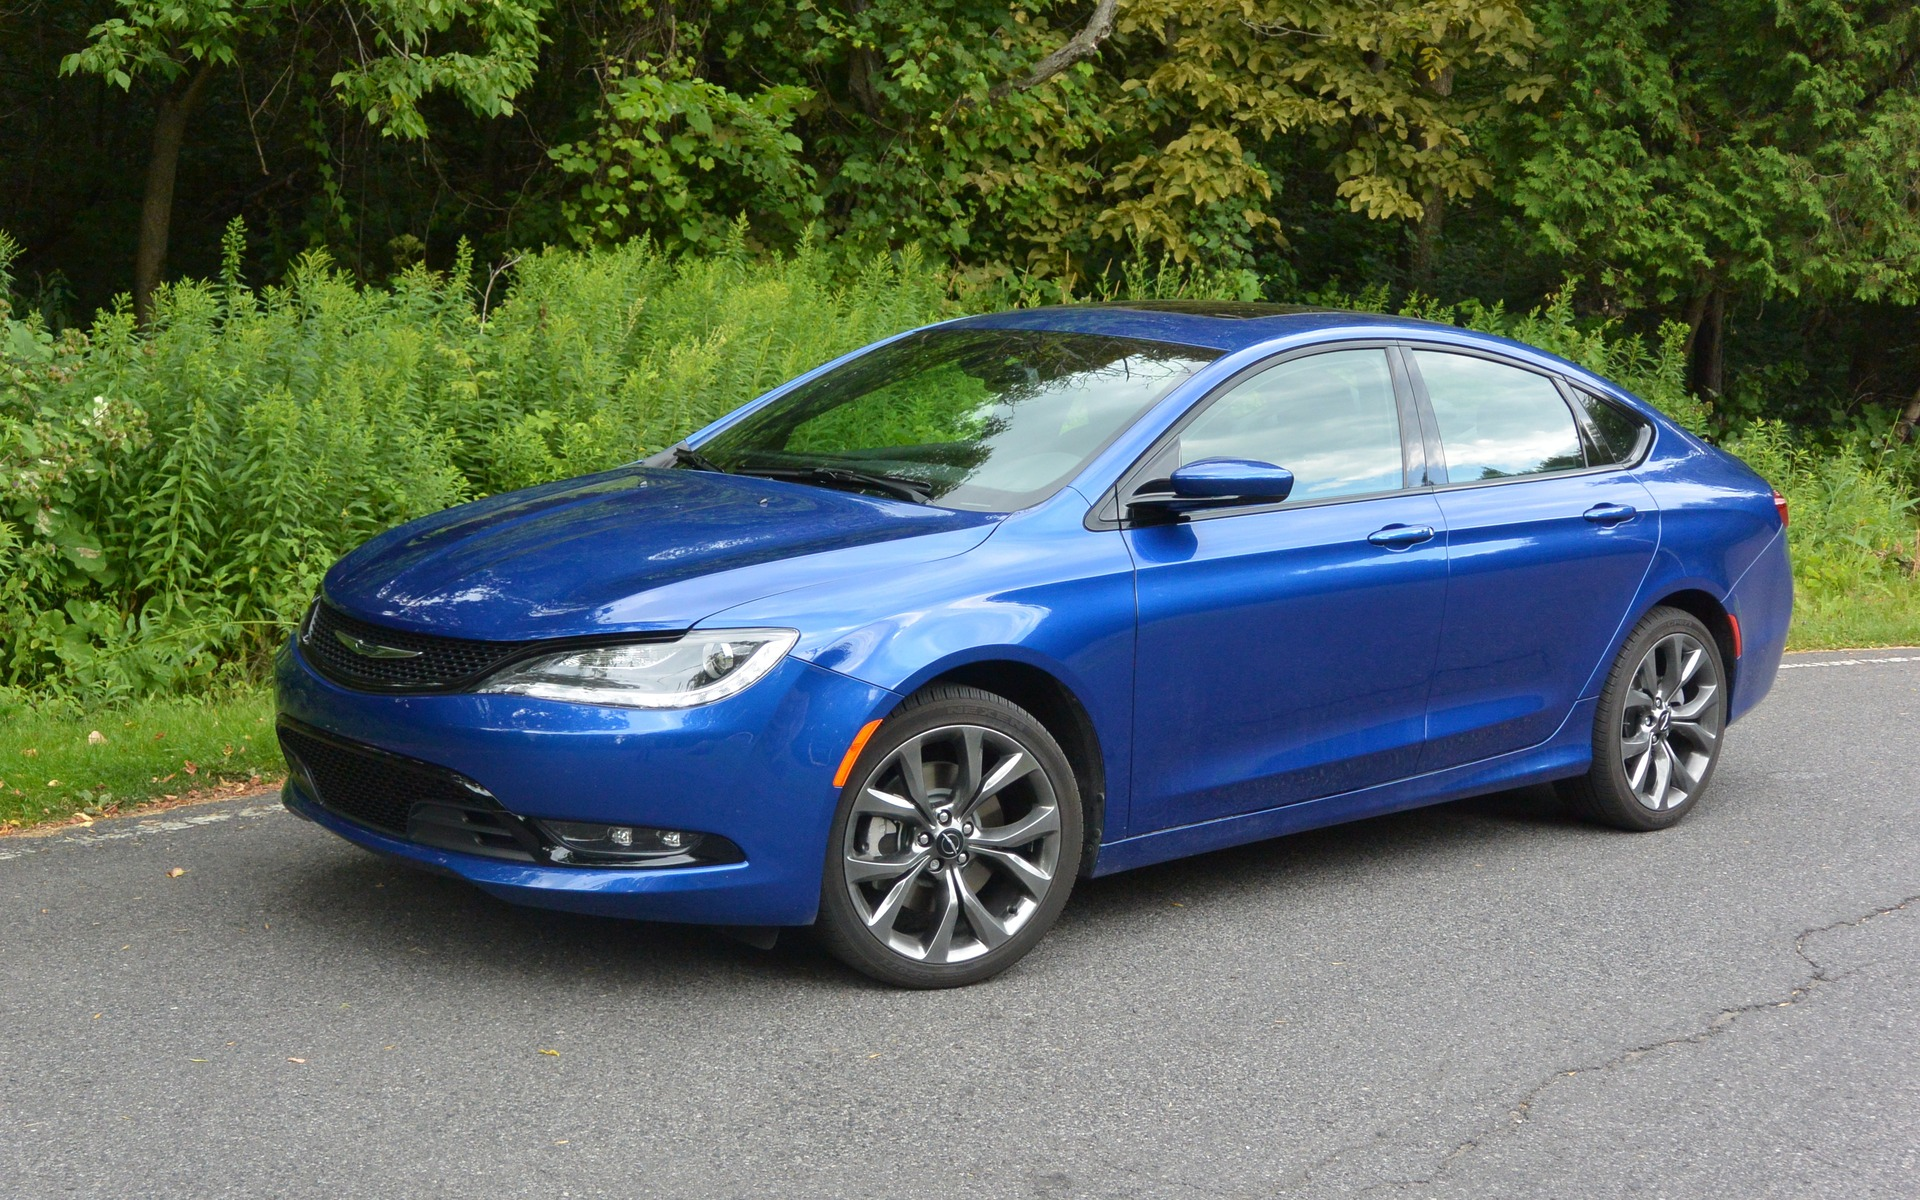 hight resolution of 2016 chrysler 200 news reviews picture galleries and videos the car guide